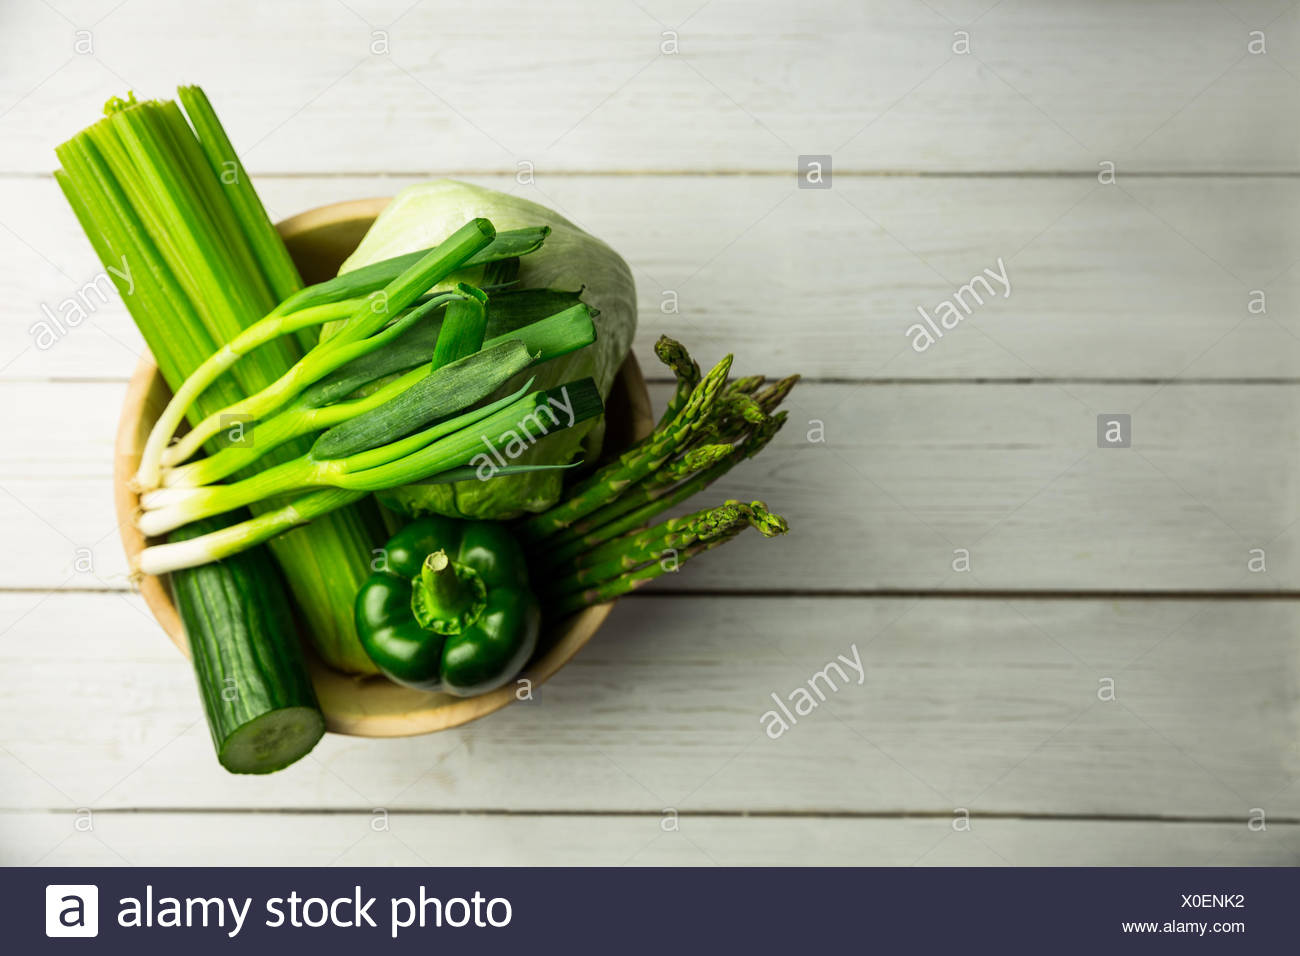 Green vegetables on table Stock Photo